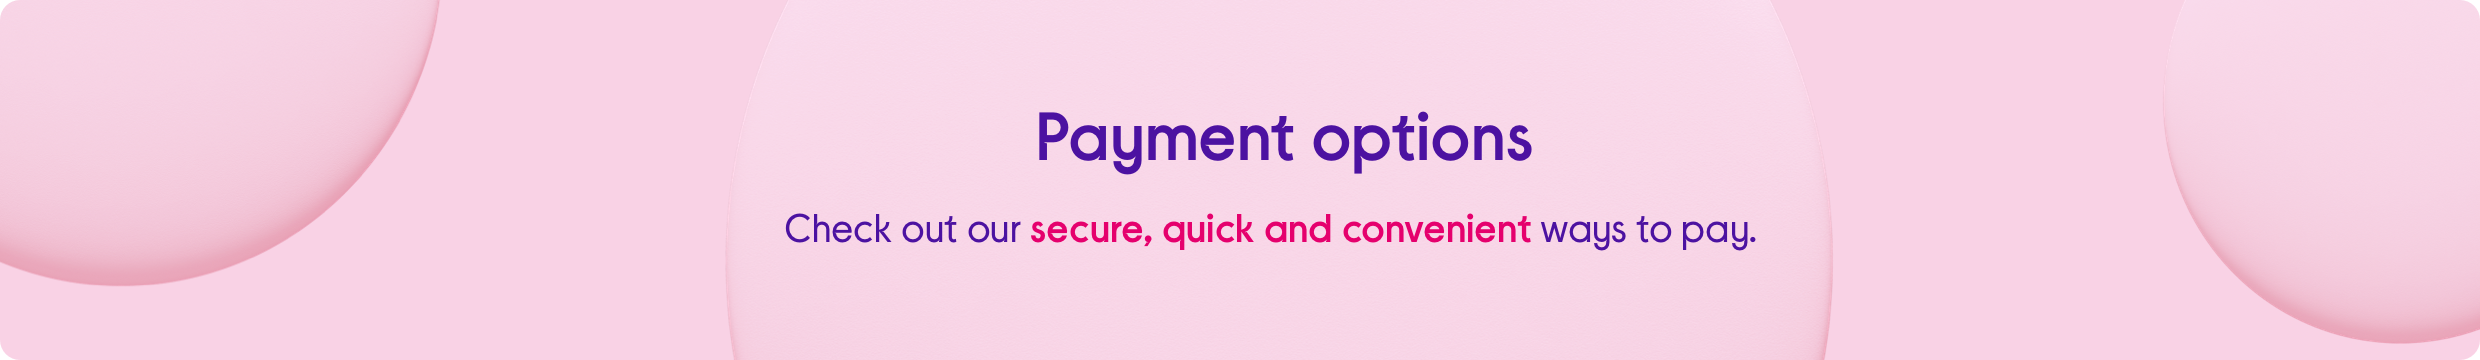 Check out our secure, quick and convenient ways to pay